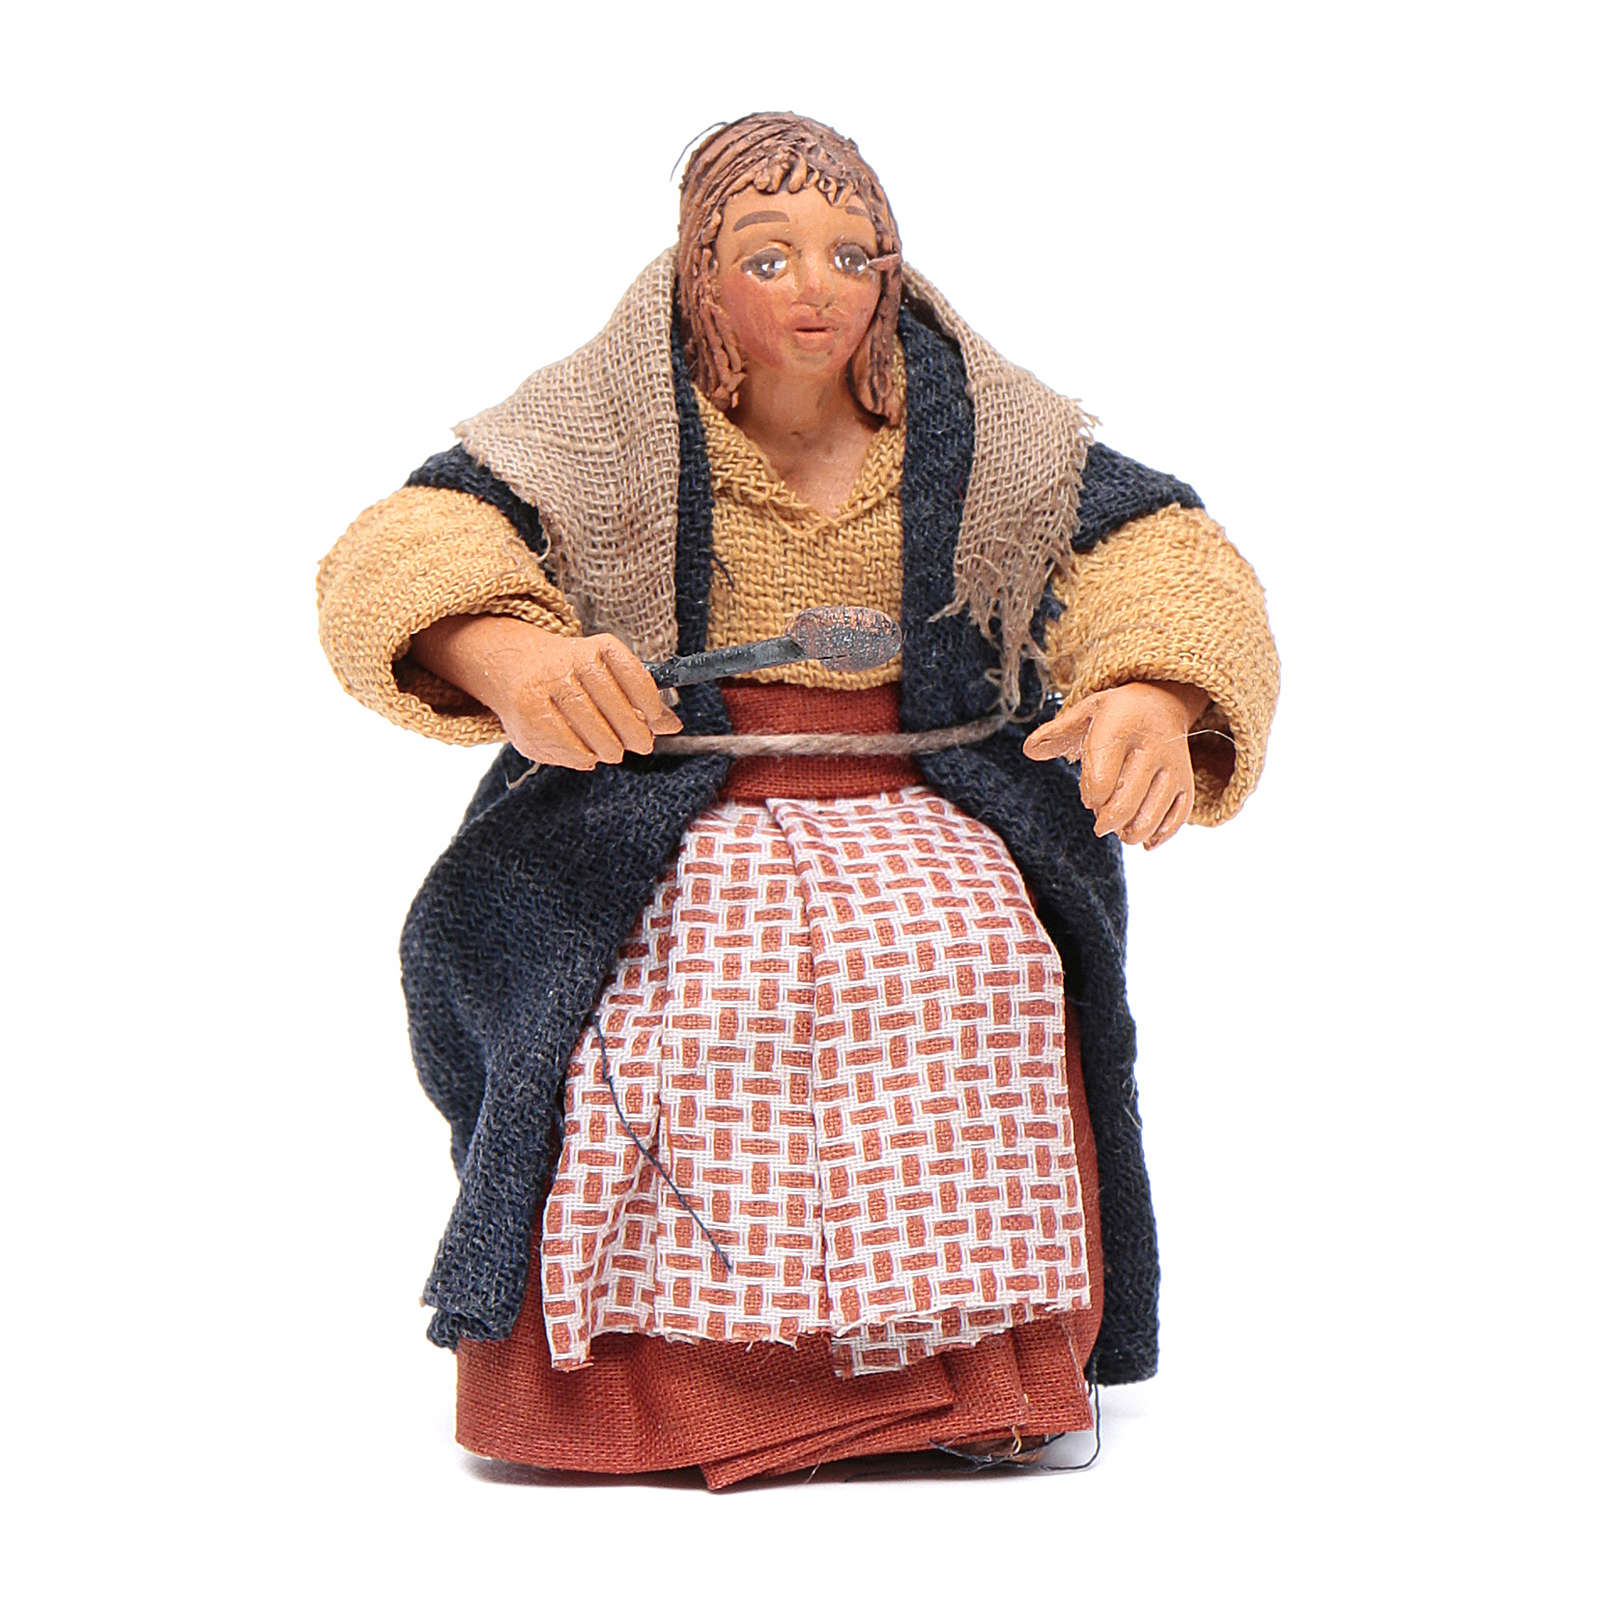 Woman with spoon for table 10cm, Neapolitan Nativity figurine 4